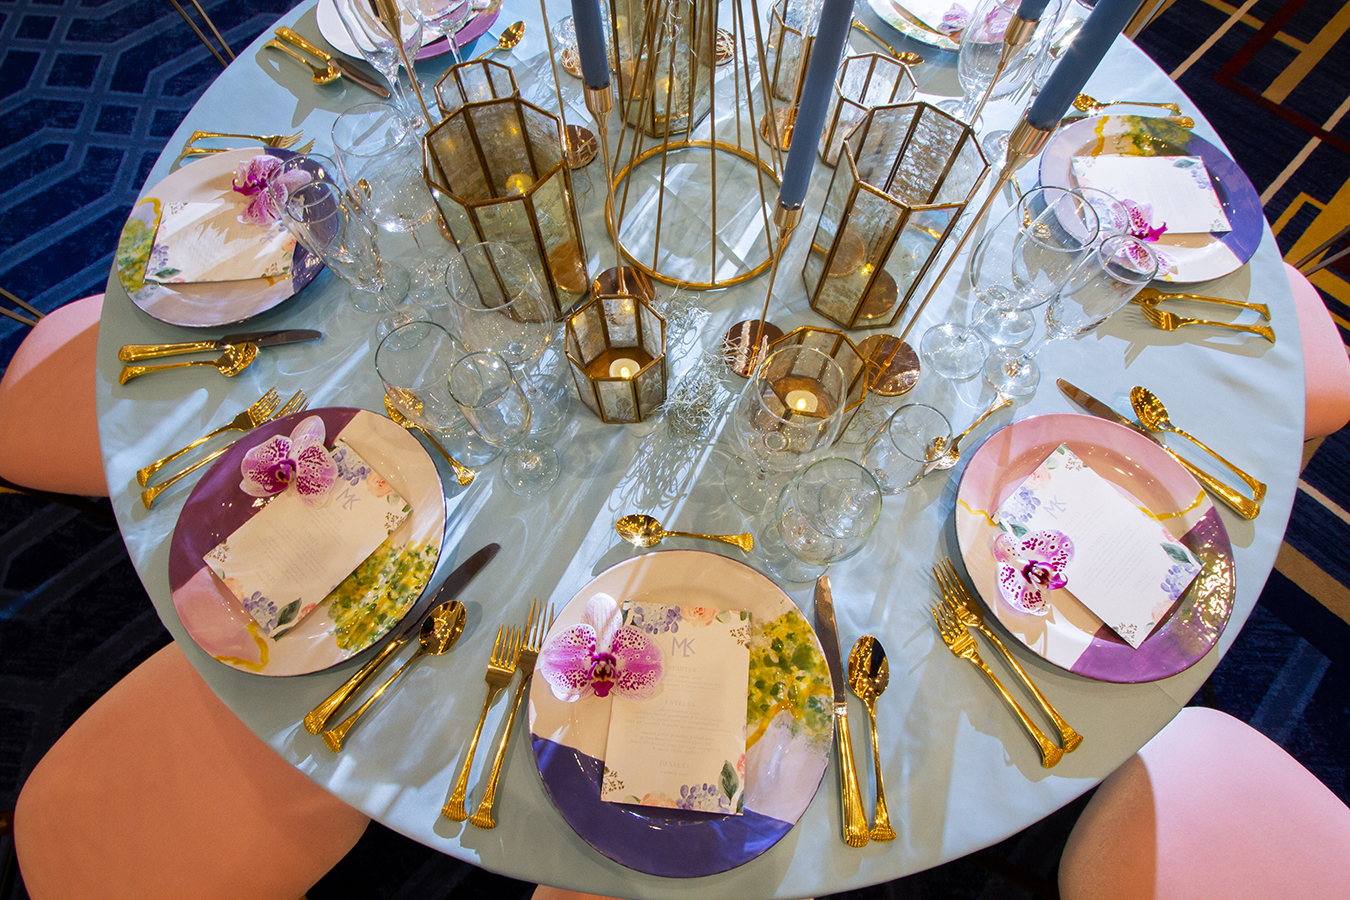 Hand-painted plates from Chez Clay | Watercolor menus by Invitobella | Rentals by True Value Rental | Florals by Mitch's Flowers